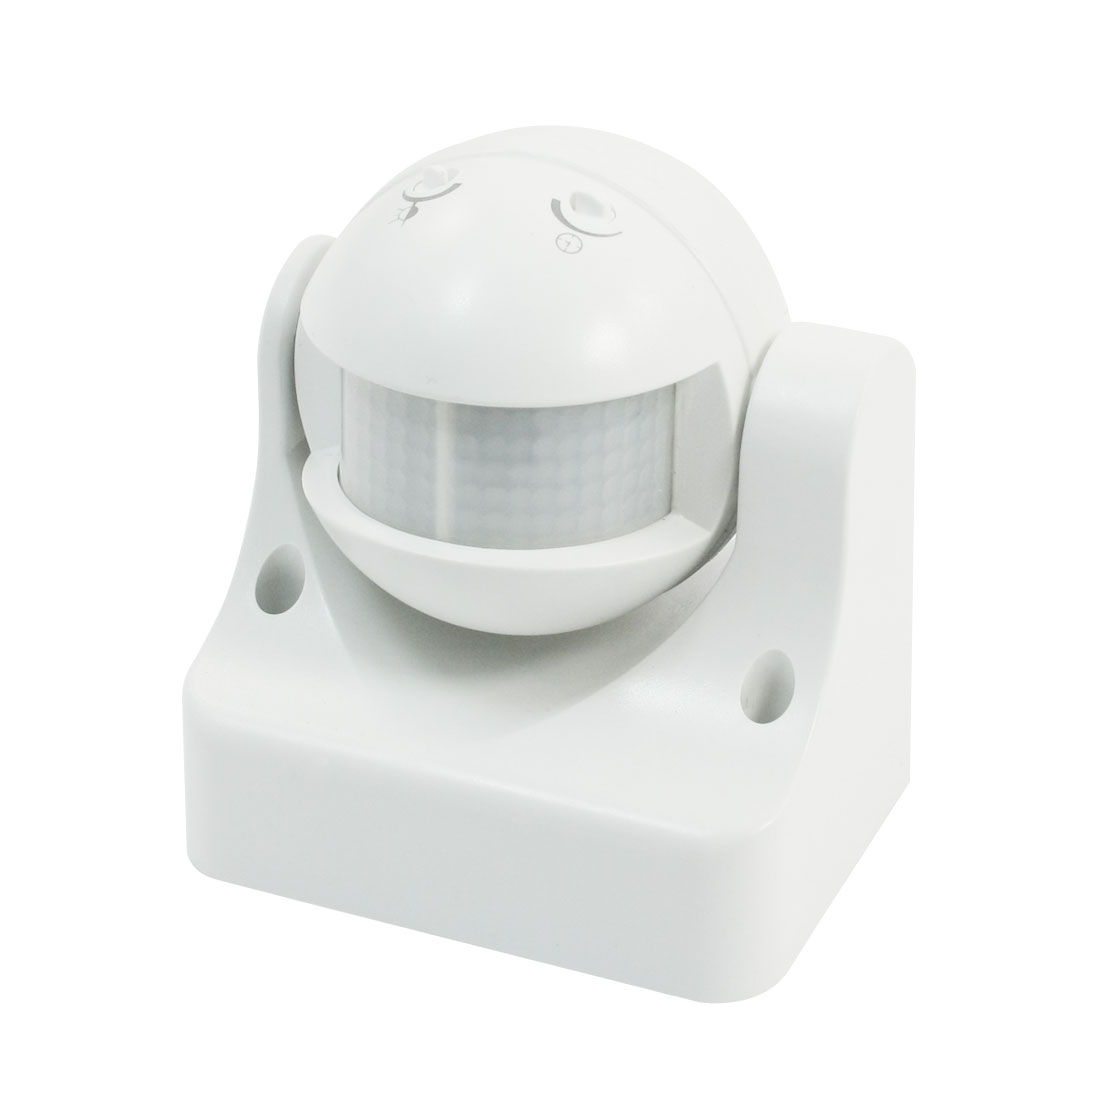 AC220V-240V 12M Detection Distance Rotary Head White Plastic ON OFF Automatic Infrared Sensor Switch 5s-8min